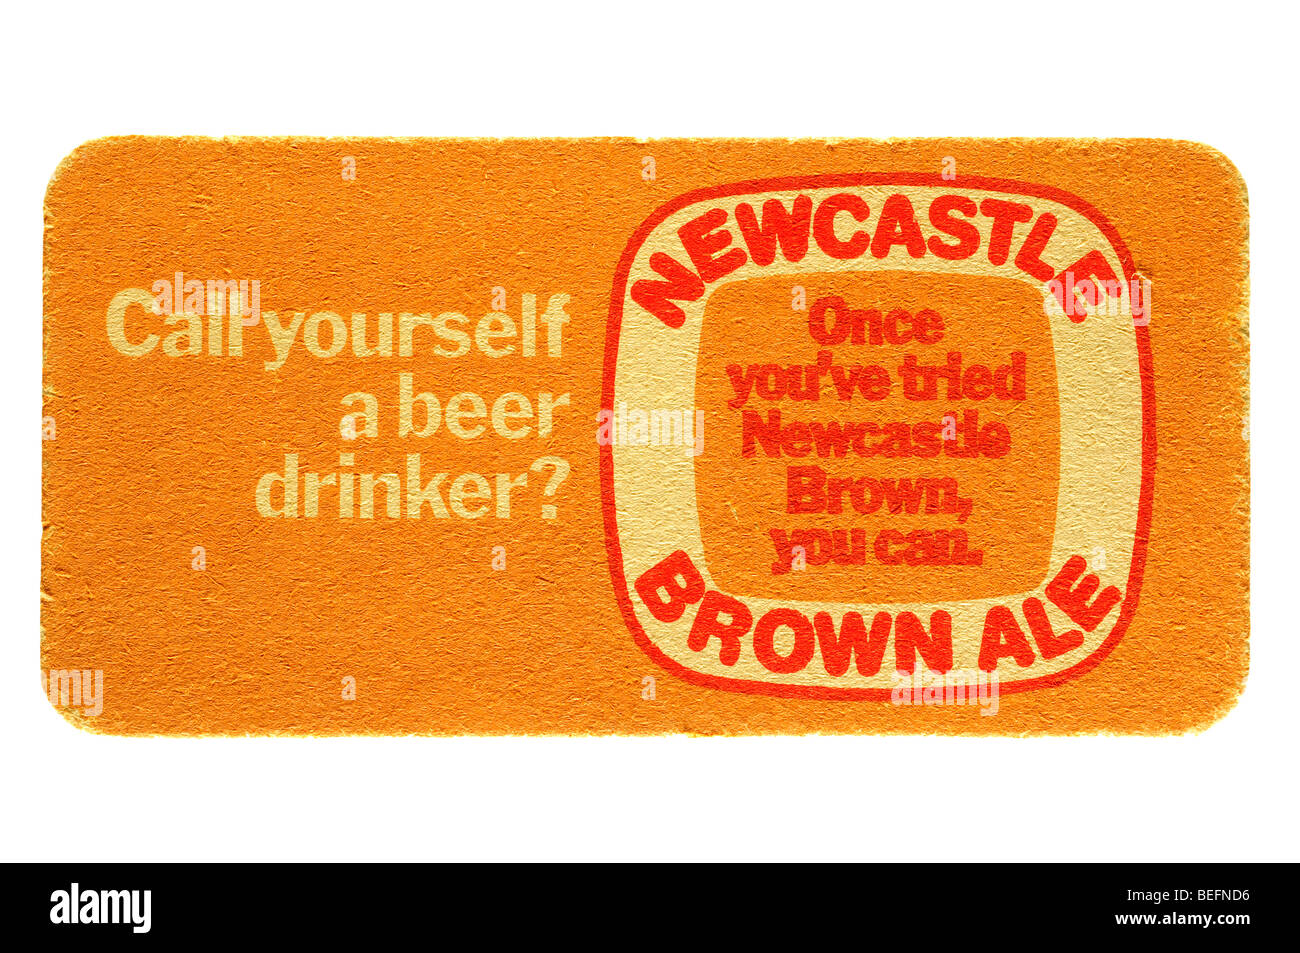 call yourself a beer drinker newcastle brown ale once youve tried newcastle brown you can - Stock Image